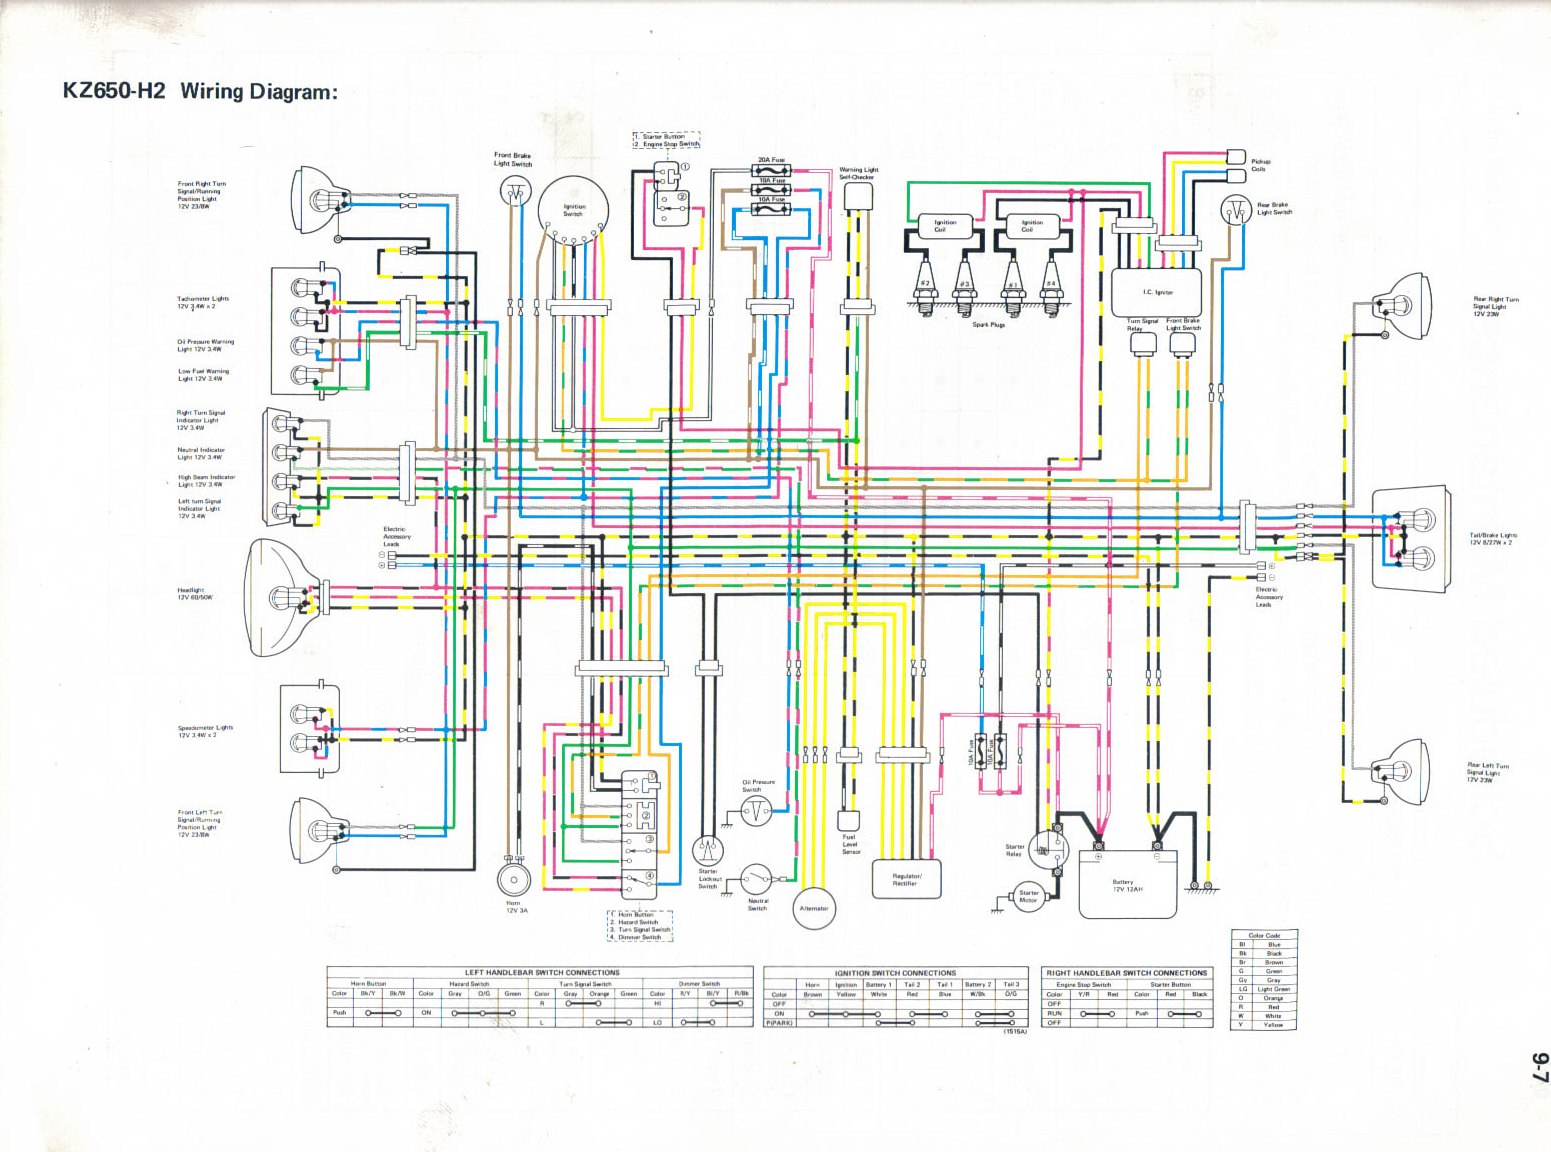 KZ650 H2 kz650 info wiring diagrams kawasaki z750 wiring diagram at creativeand.co